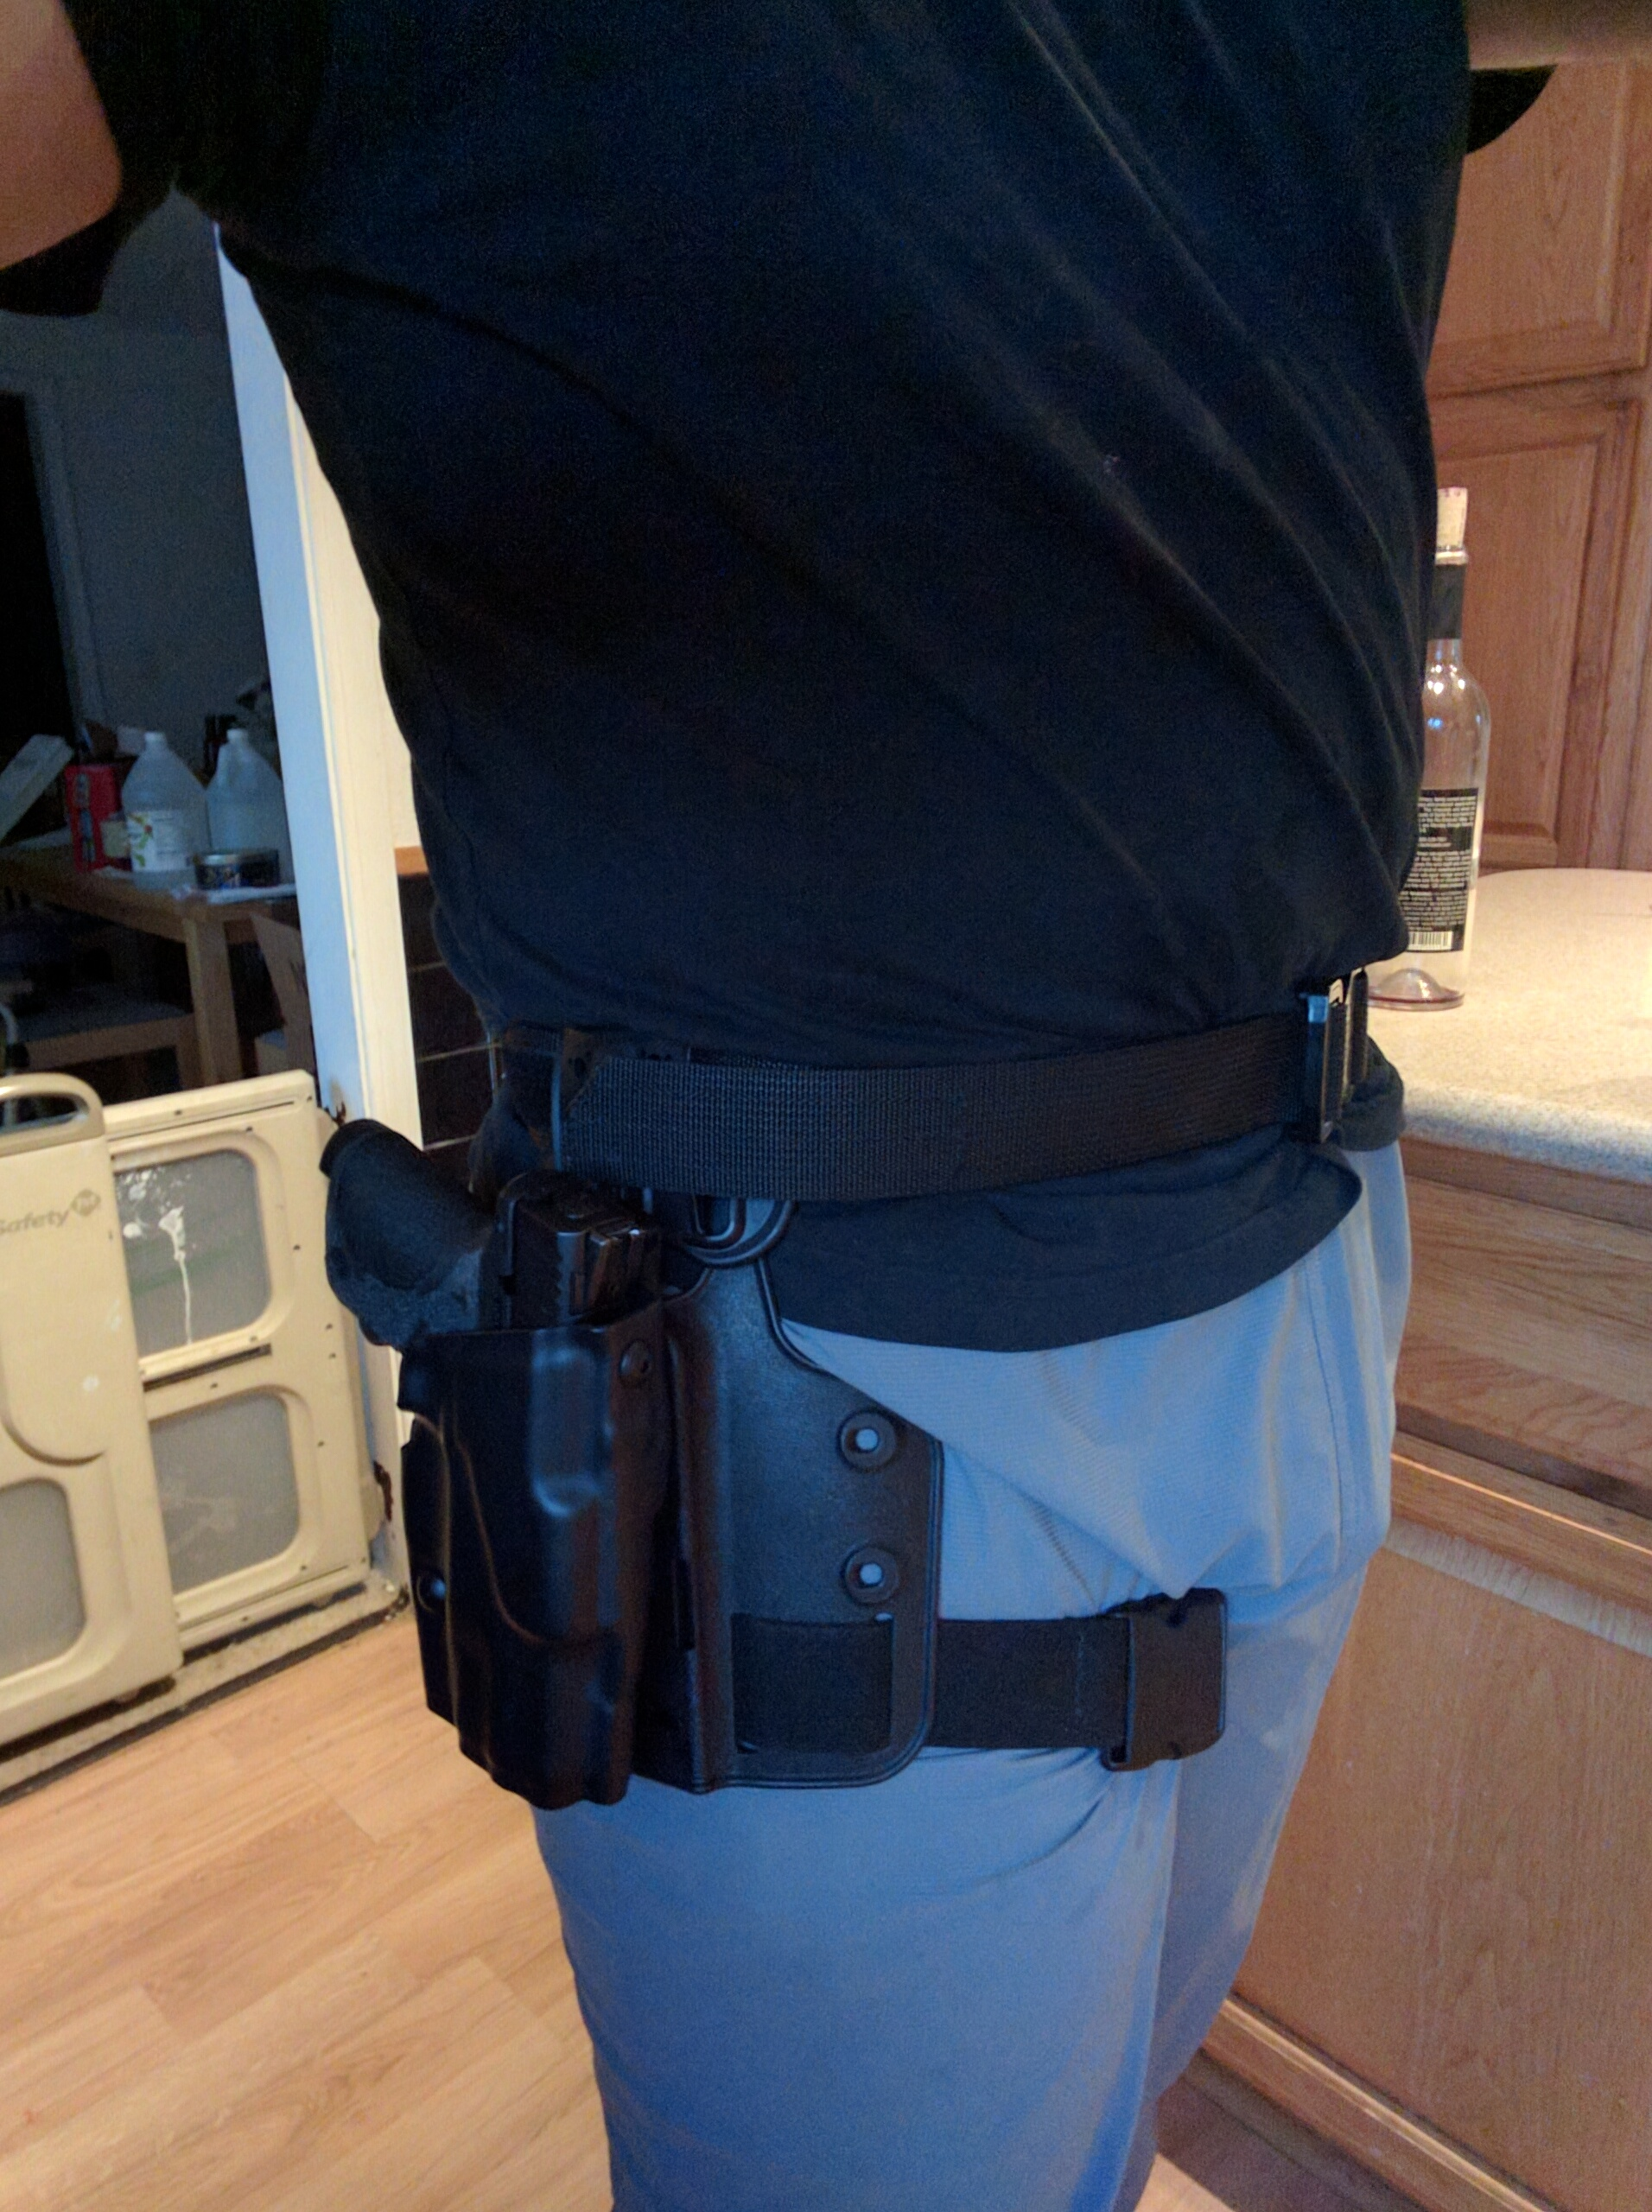 Safariland 6005 Leg Shield and ALS Holster for Running Hiking - Ongoing  reports-img 20151103 165417 32df39386